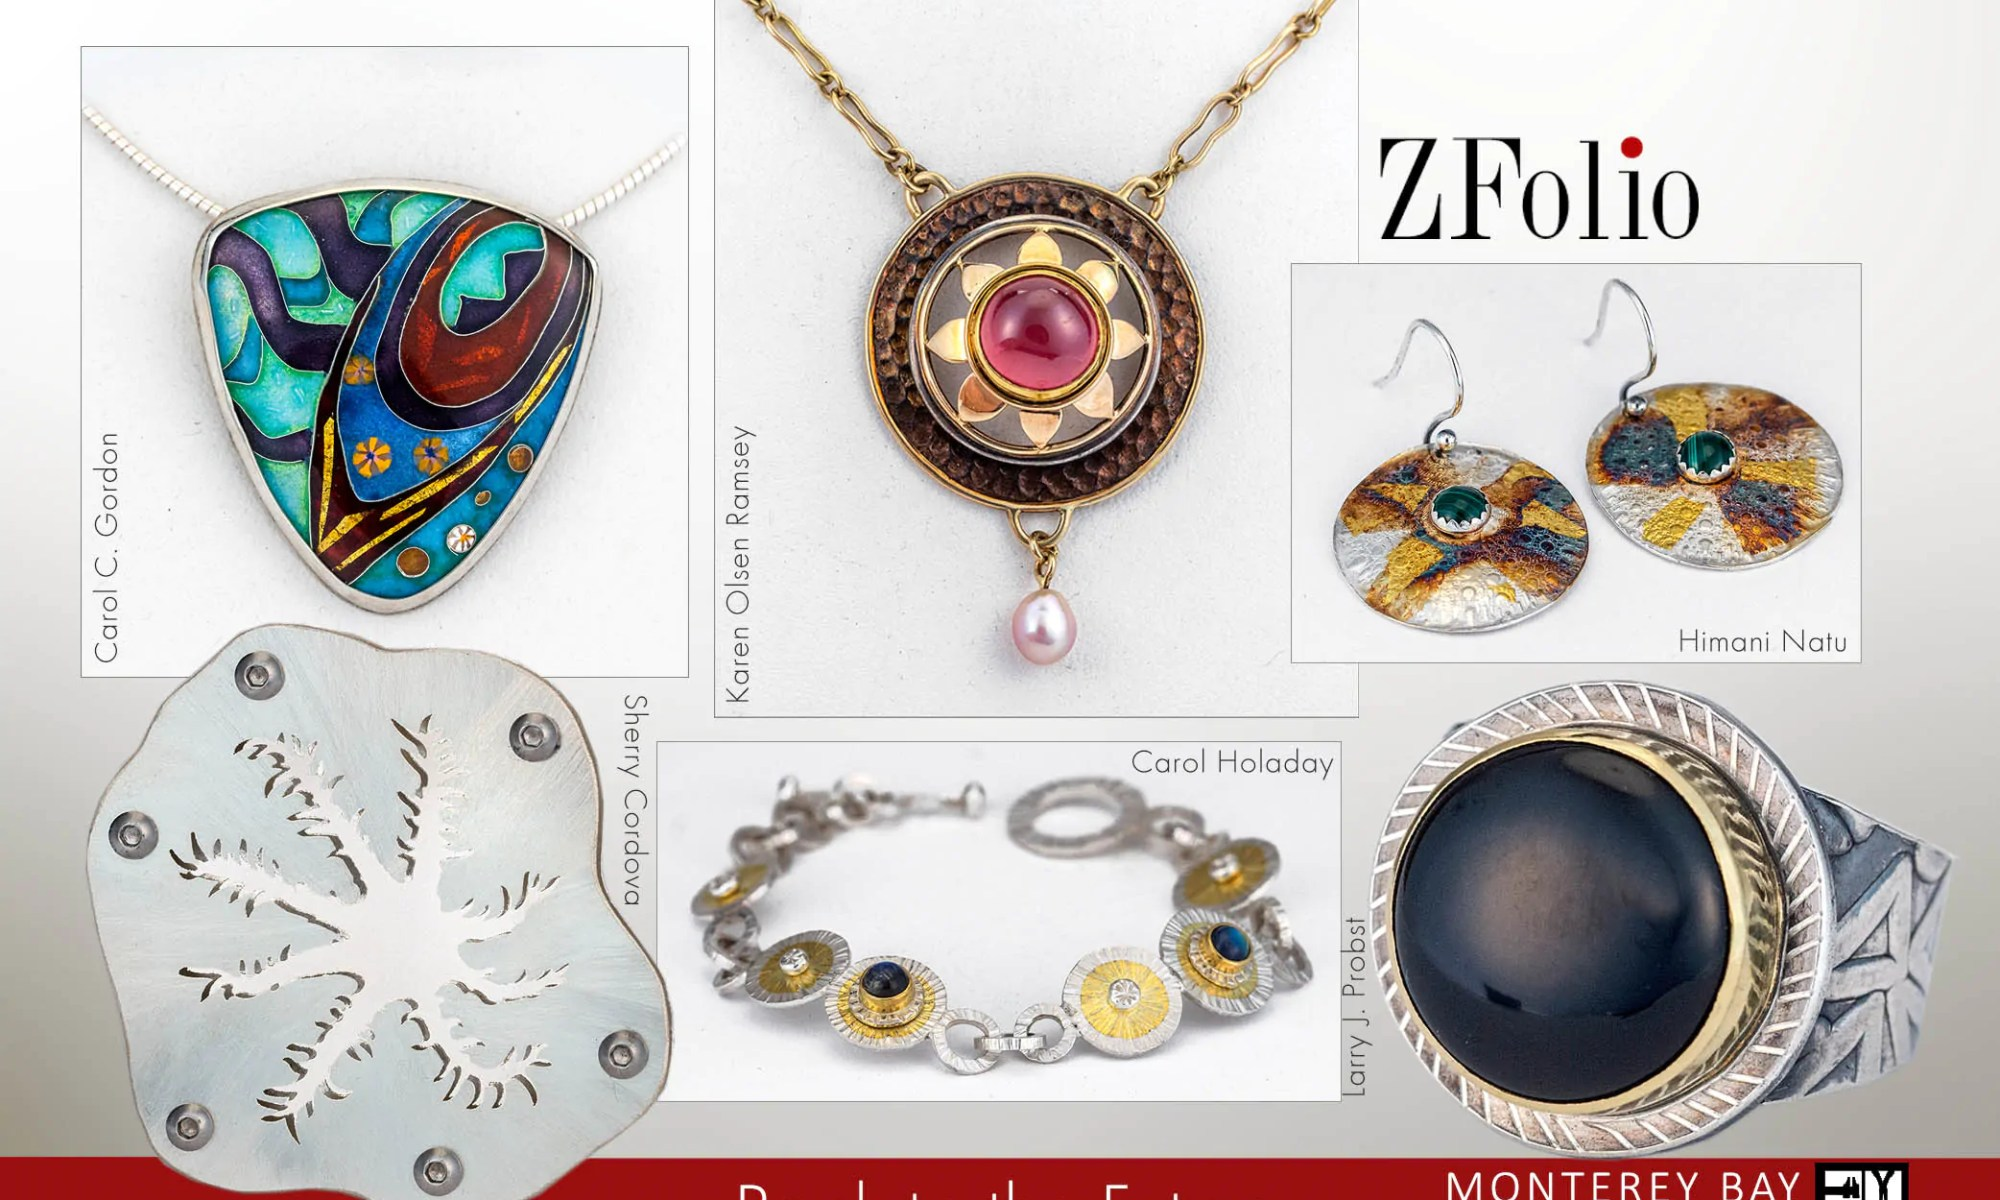 """front of postcard image for ZFolio Gallery show """"Back to the future"""" features a brooch, pendants, earrings, a bracelet, and a ring"""